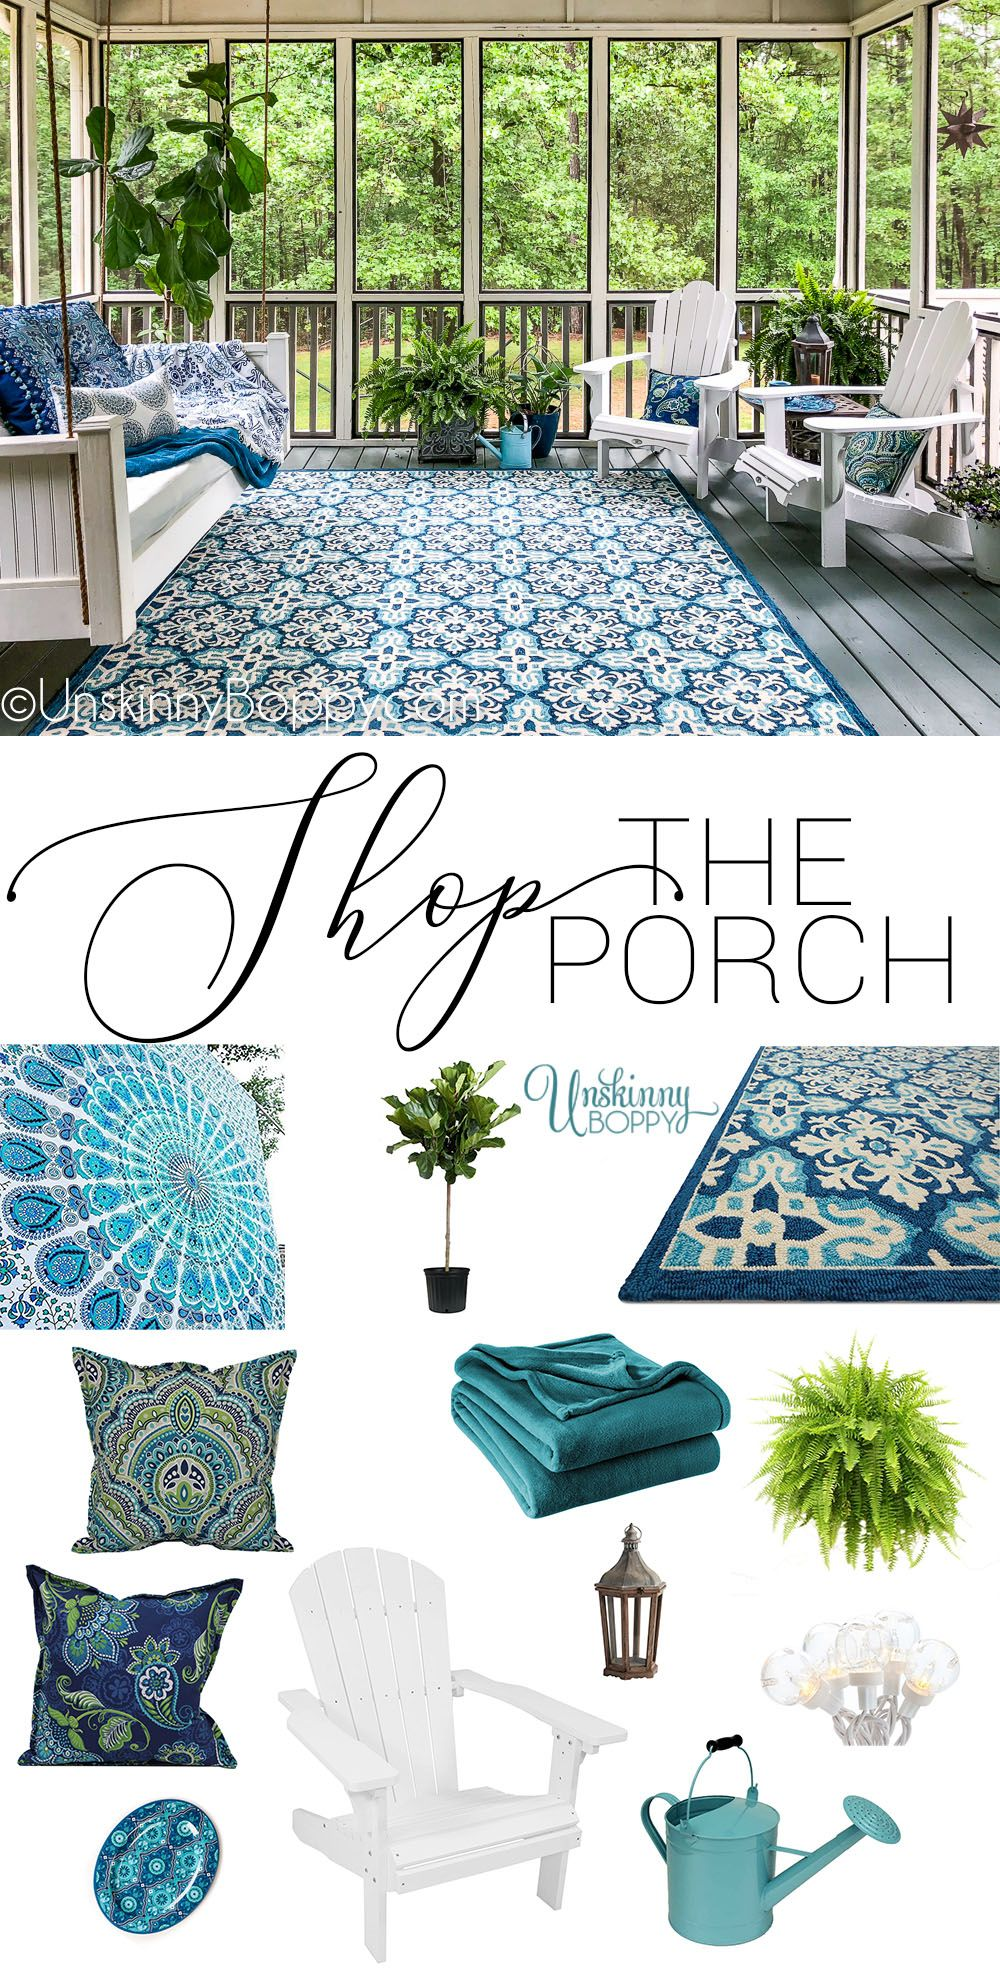 Screened-in Back Porch Decorating Ideas with Swinging Day Bed